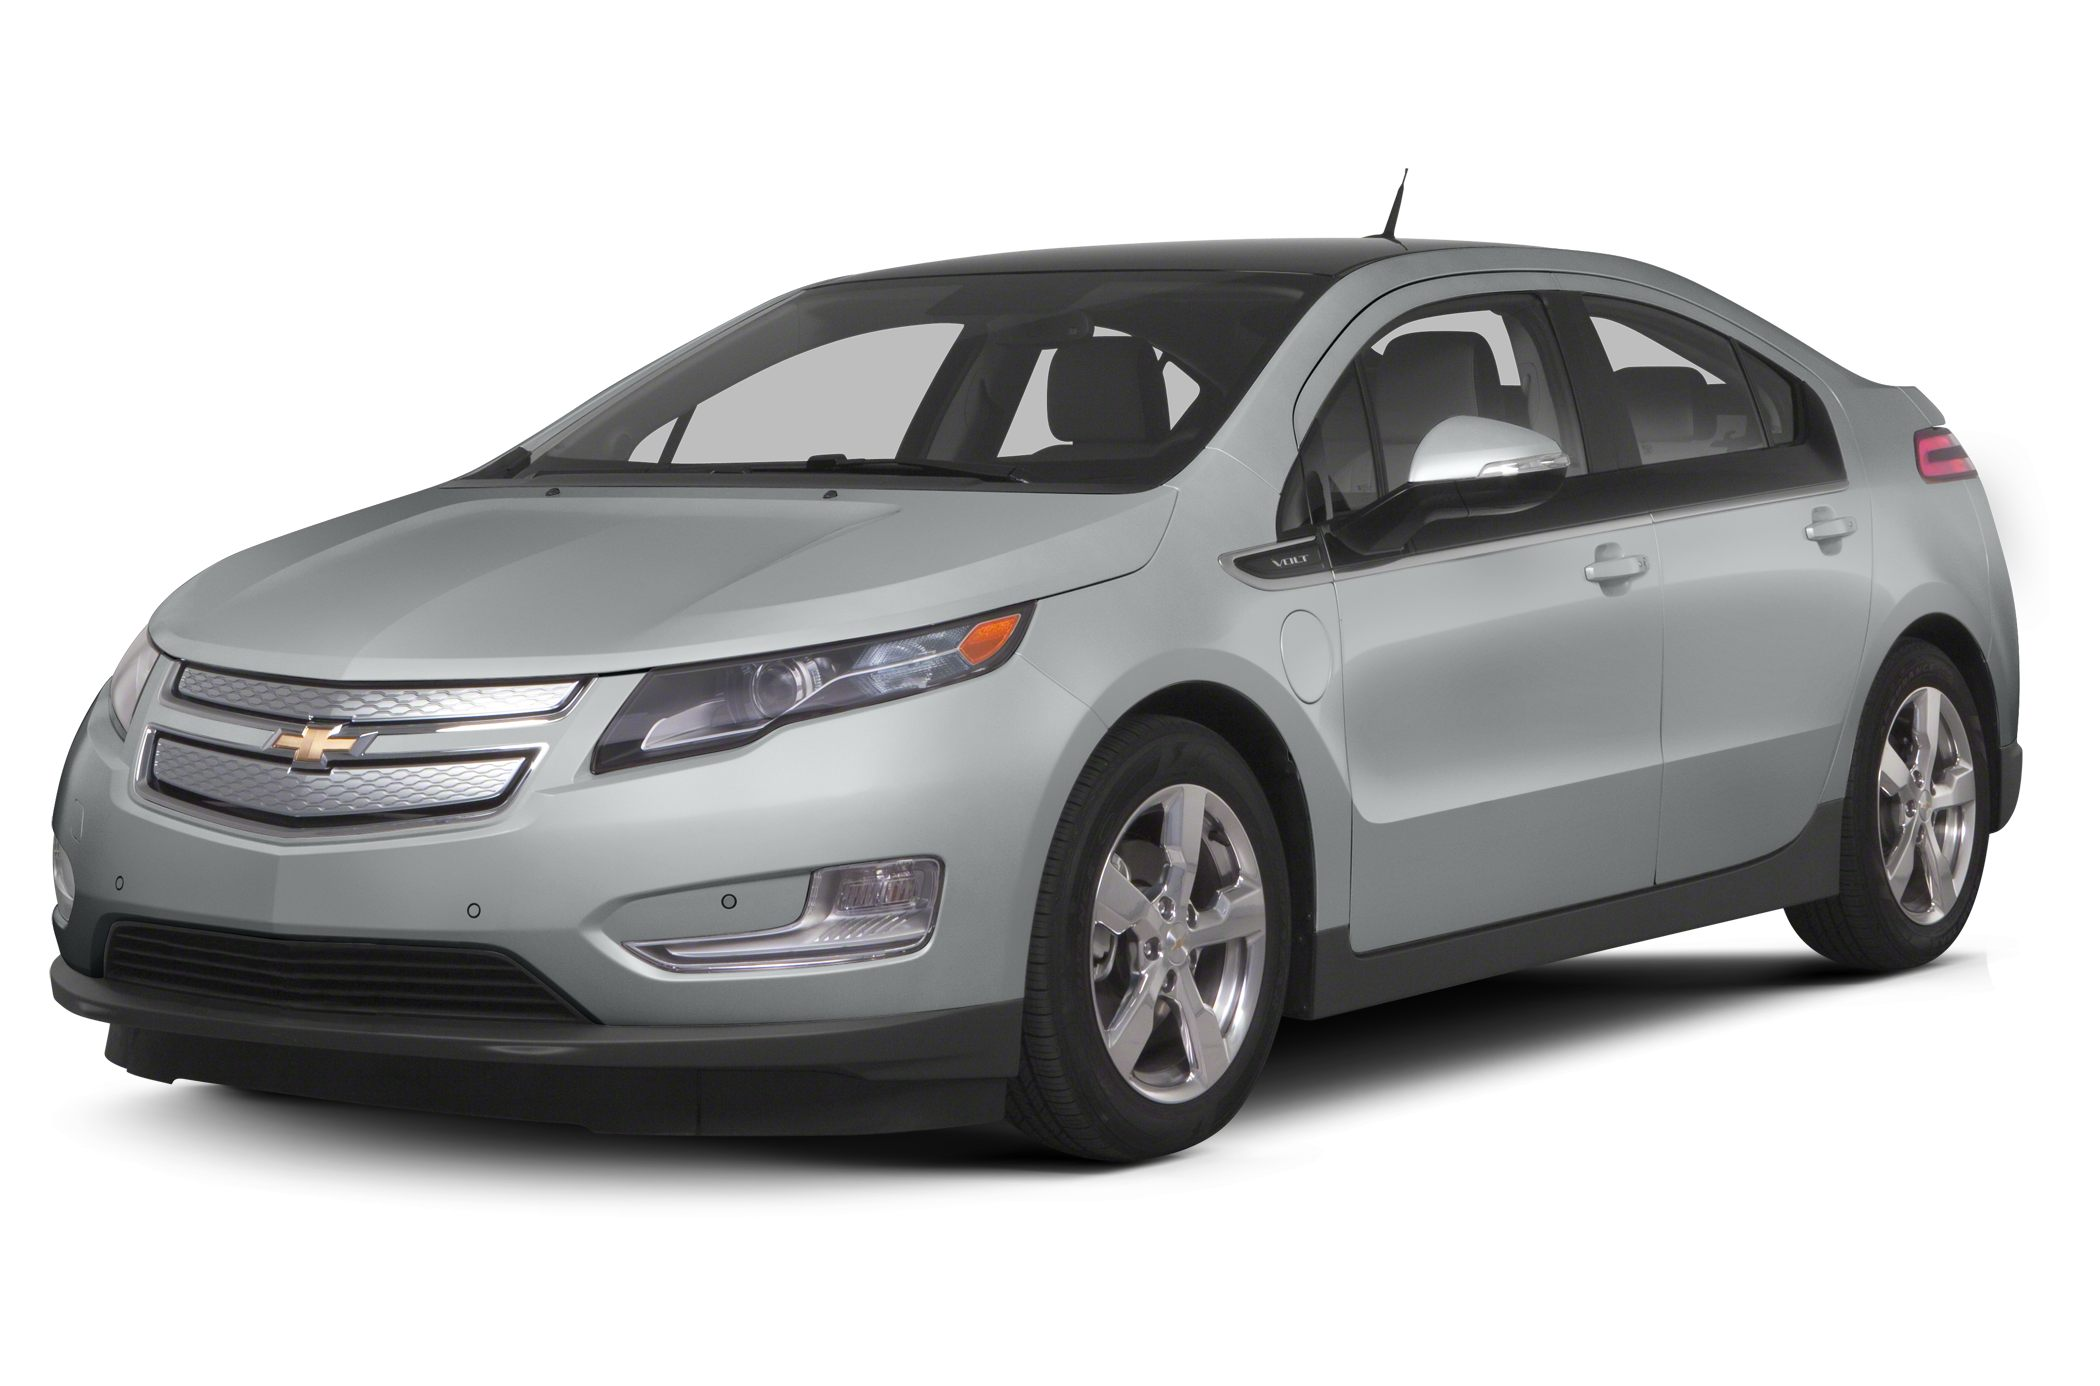 2017 Chevrolet Volt Pricing And Specs